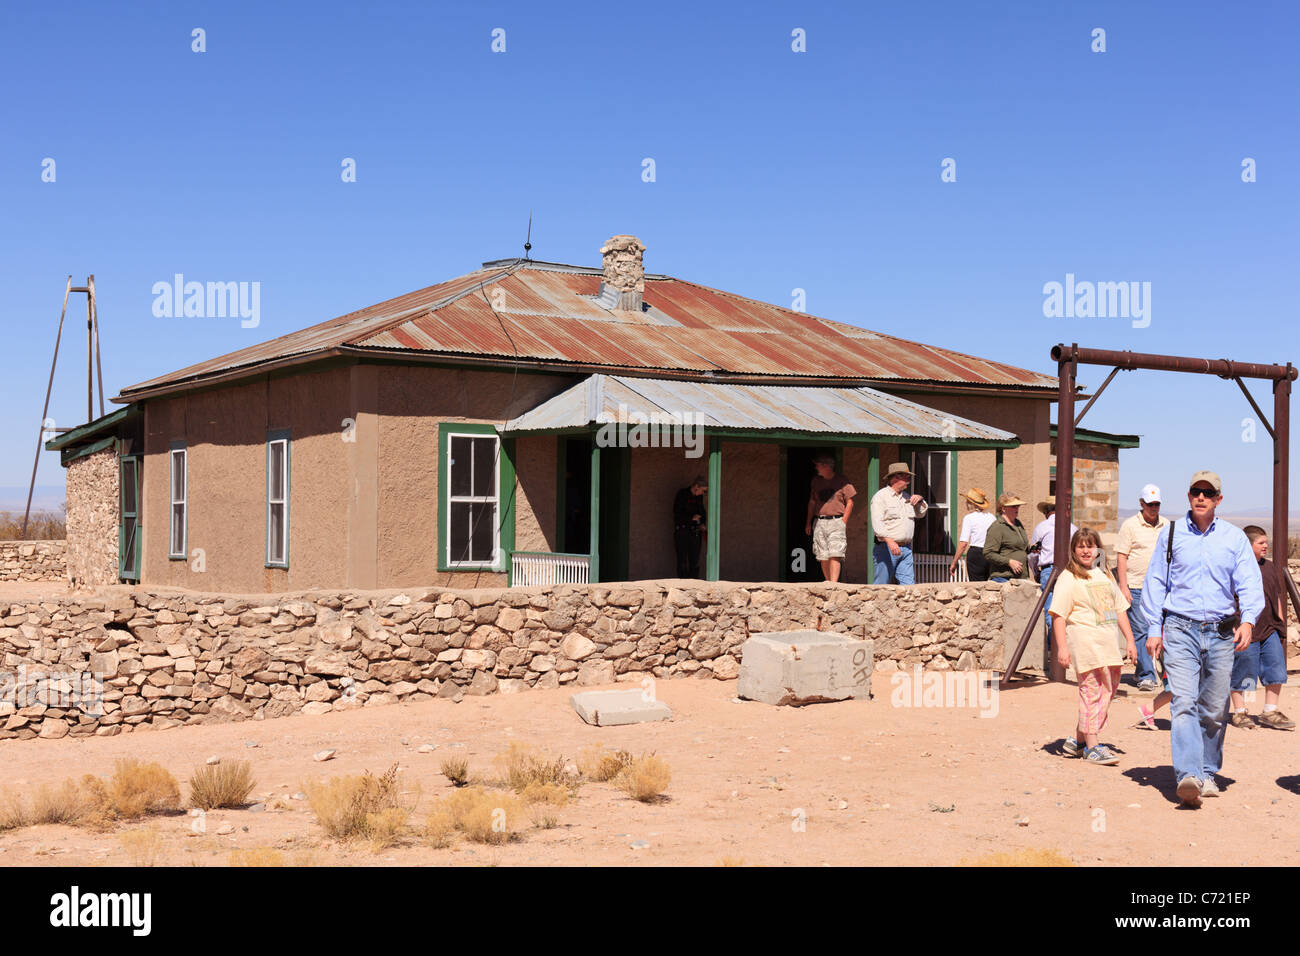 The historic McDonald Ranch House at Trinity Site, where the world's first nuclear device was assembled in 1945. - Stock Image